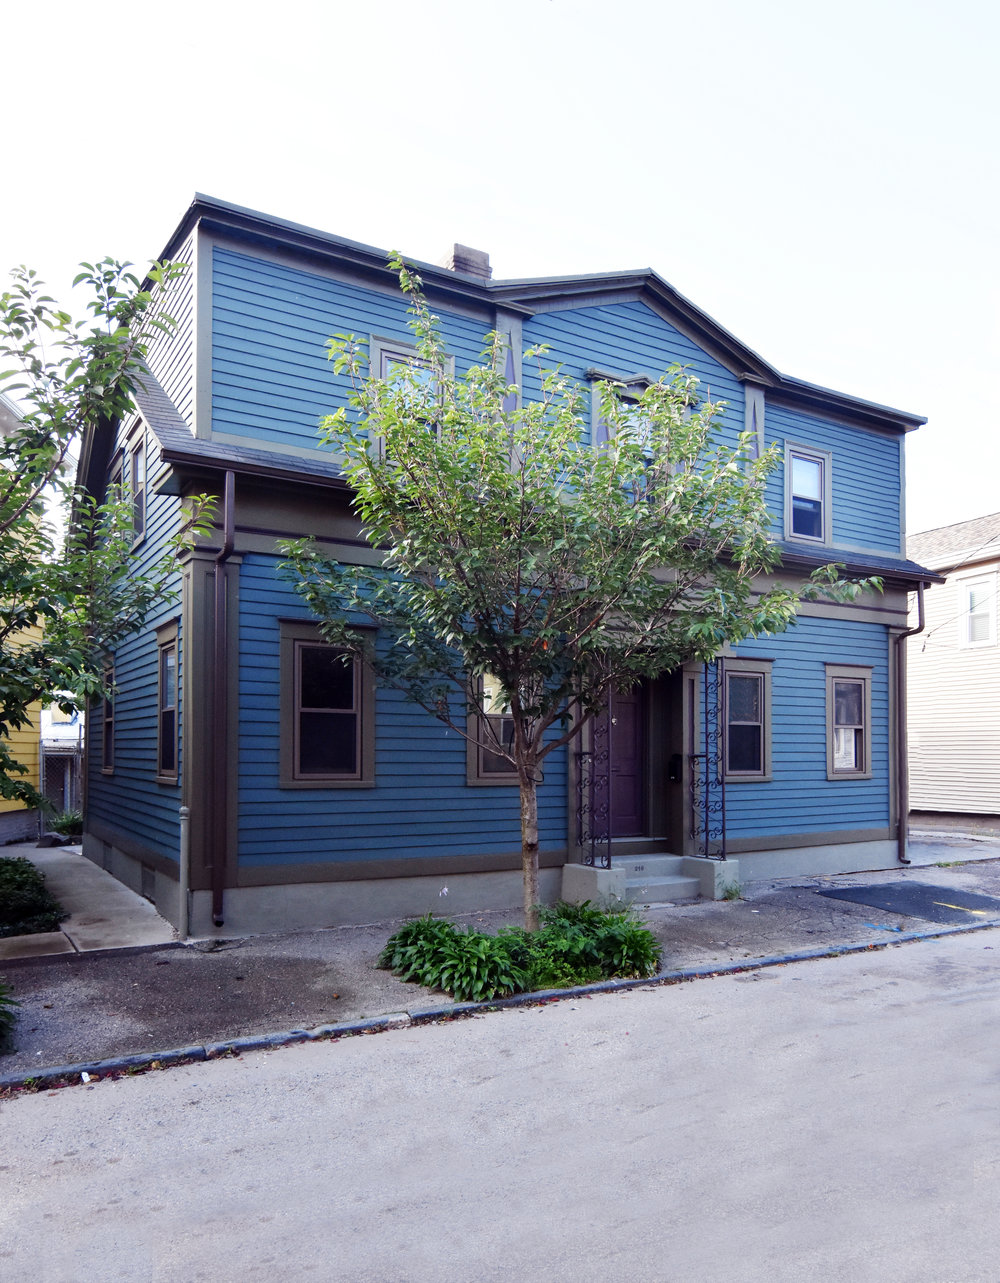 WBNA HOUSE TOUR  FROM VACANT TO VIBRANT 216 Carpenter Street  BUY TICKETS